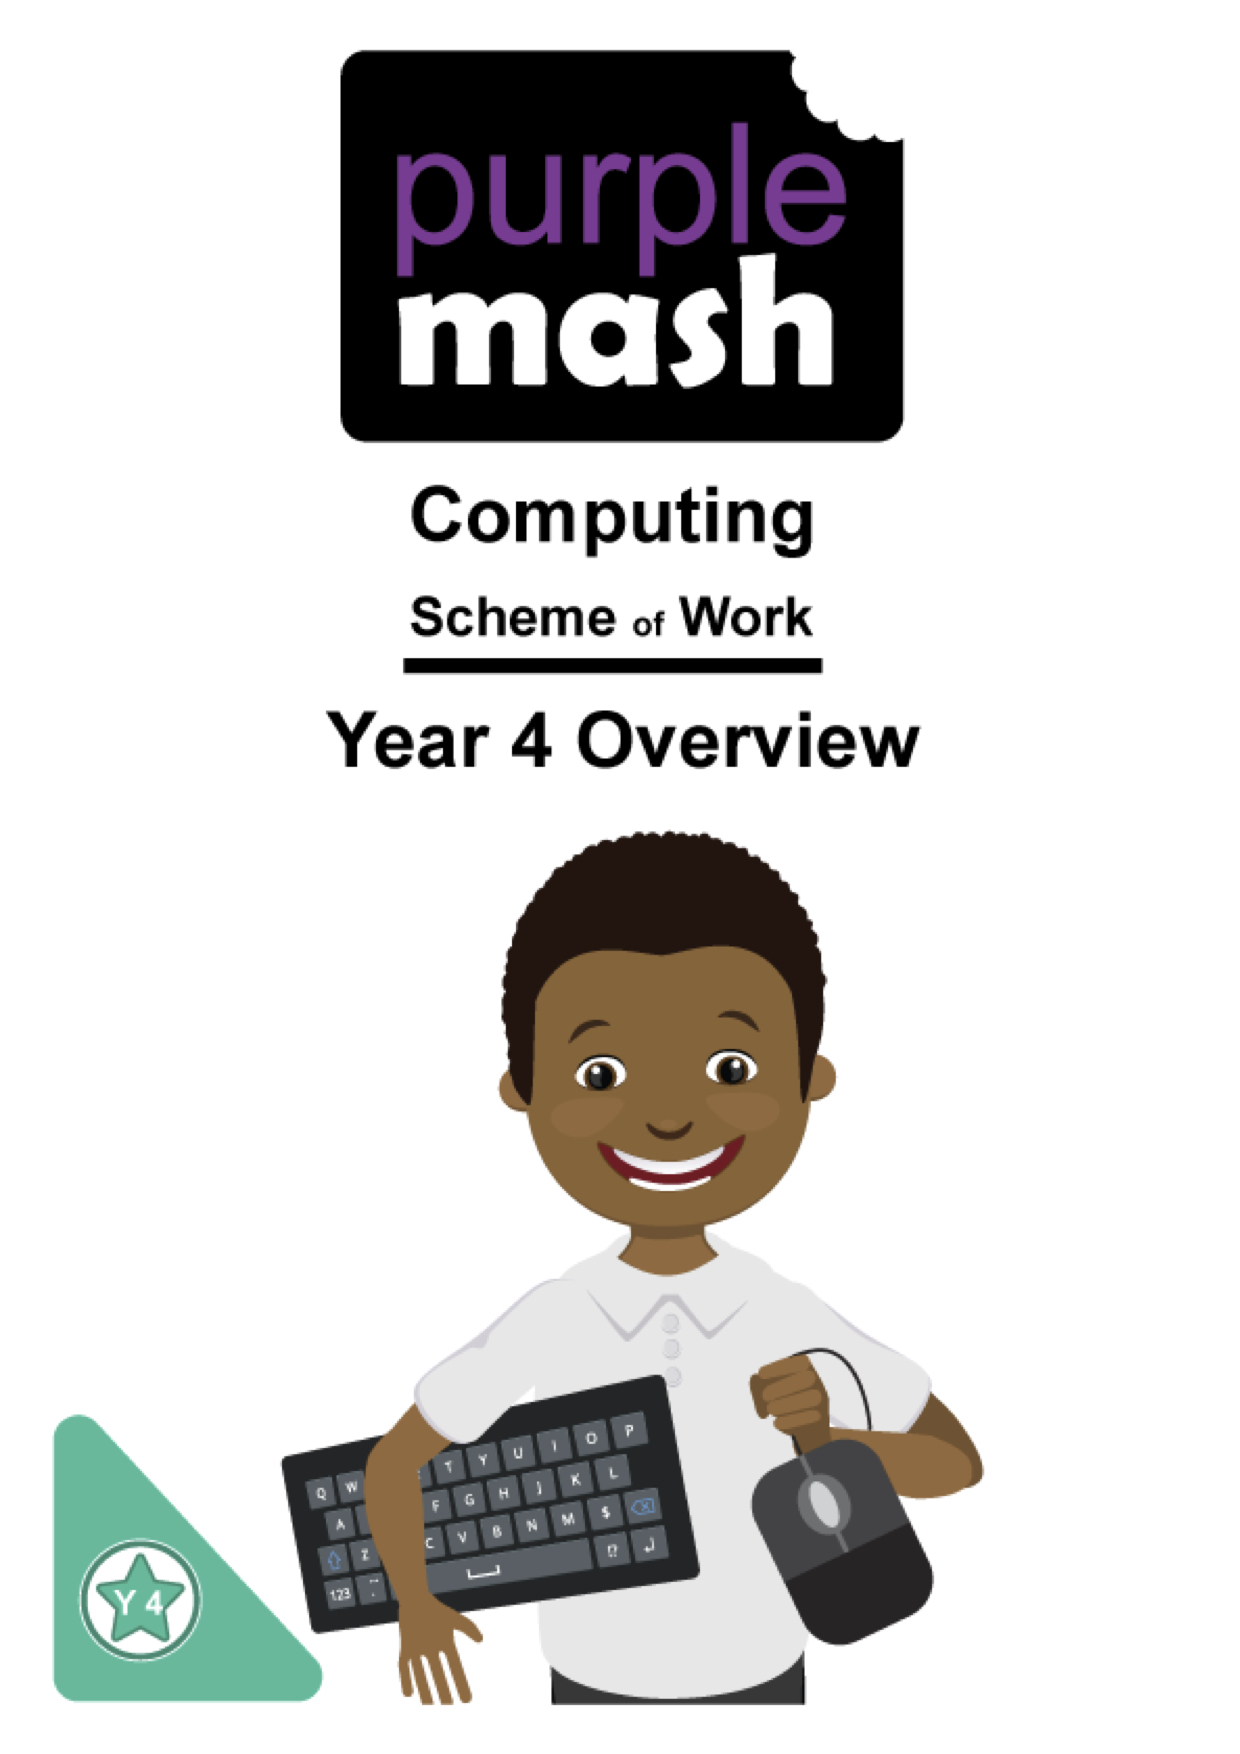 Purple Mash Scheme of Work Year 4 Overview.jpg